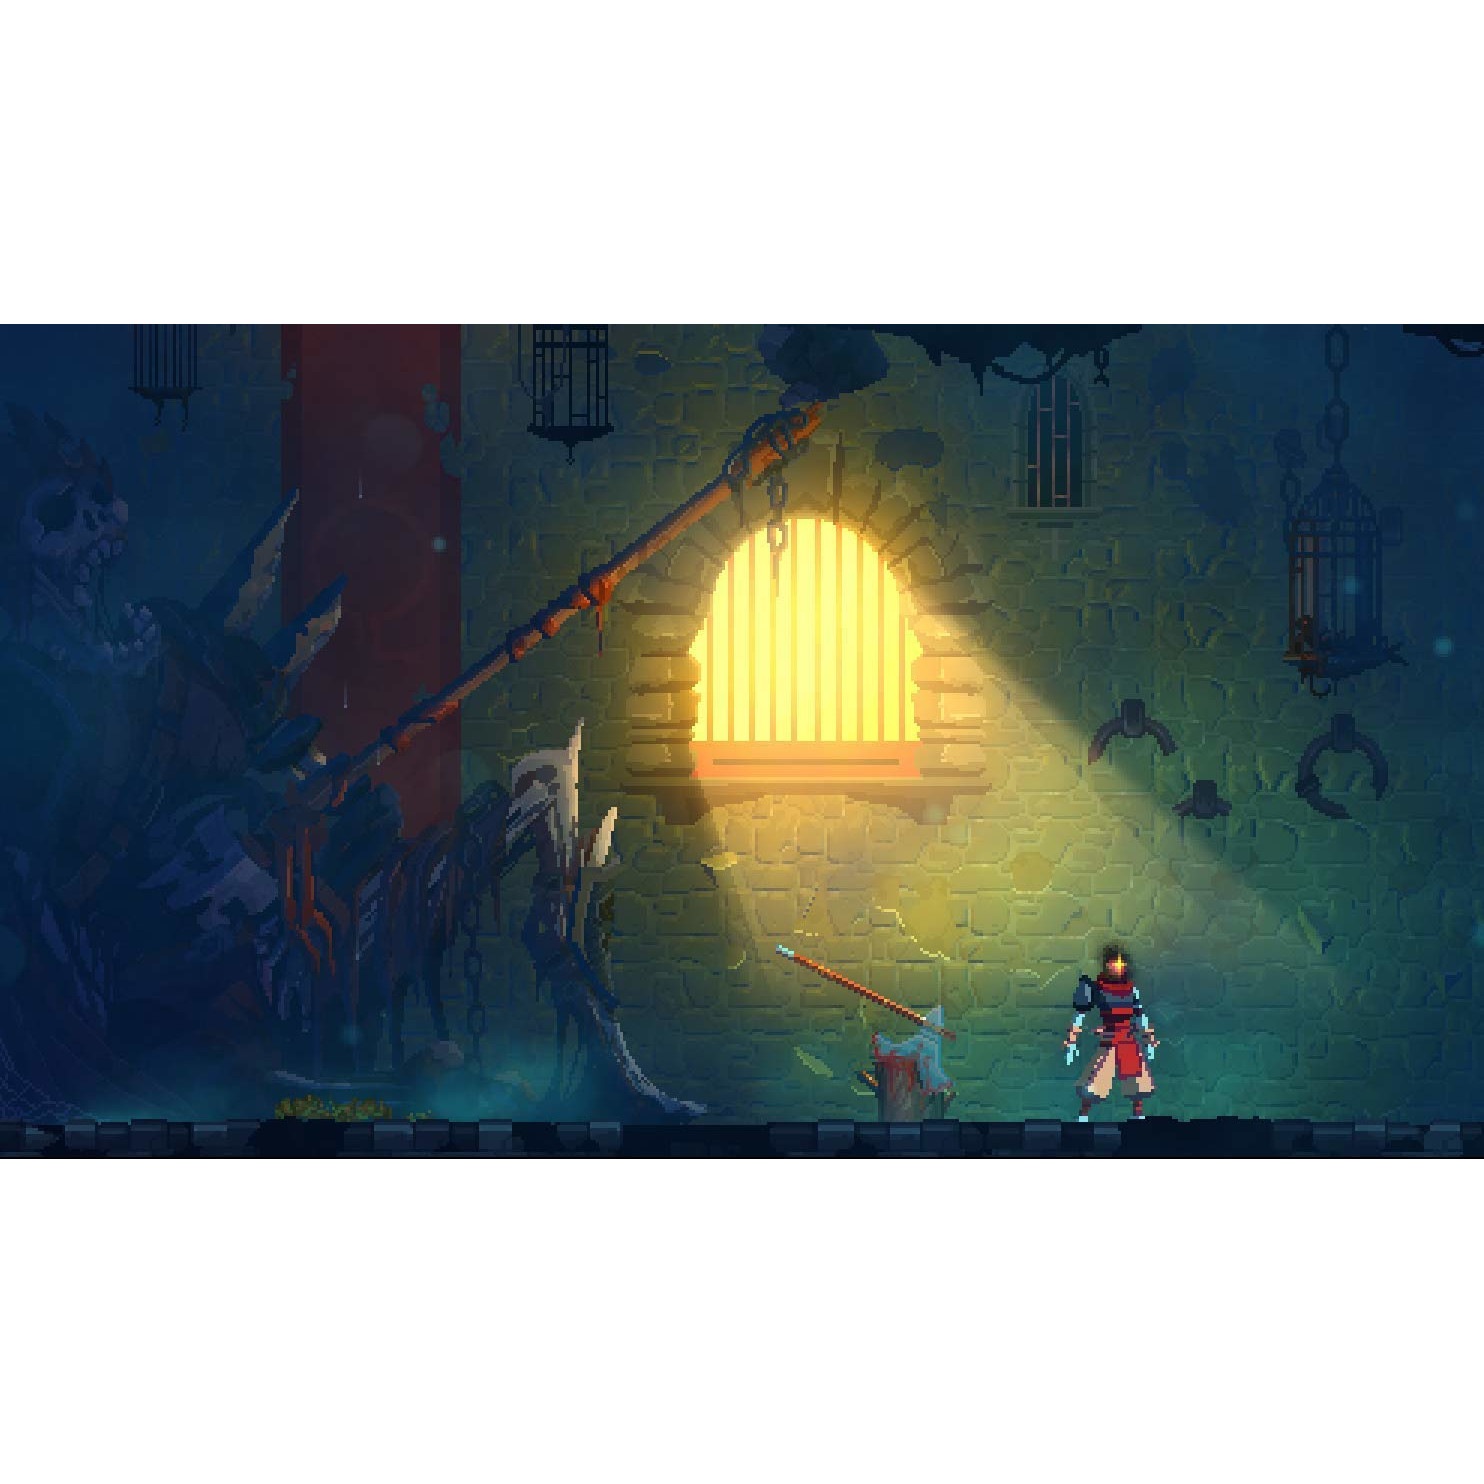 Joc Dead Cells - Action Game of the Year (EU) pentru PlayStation 4 2